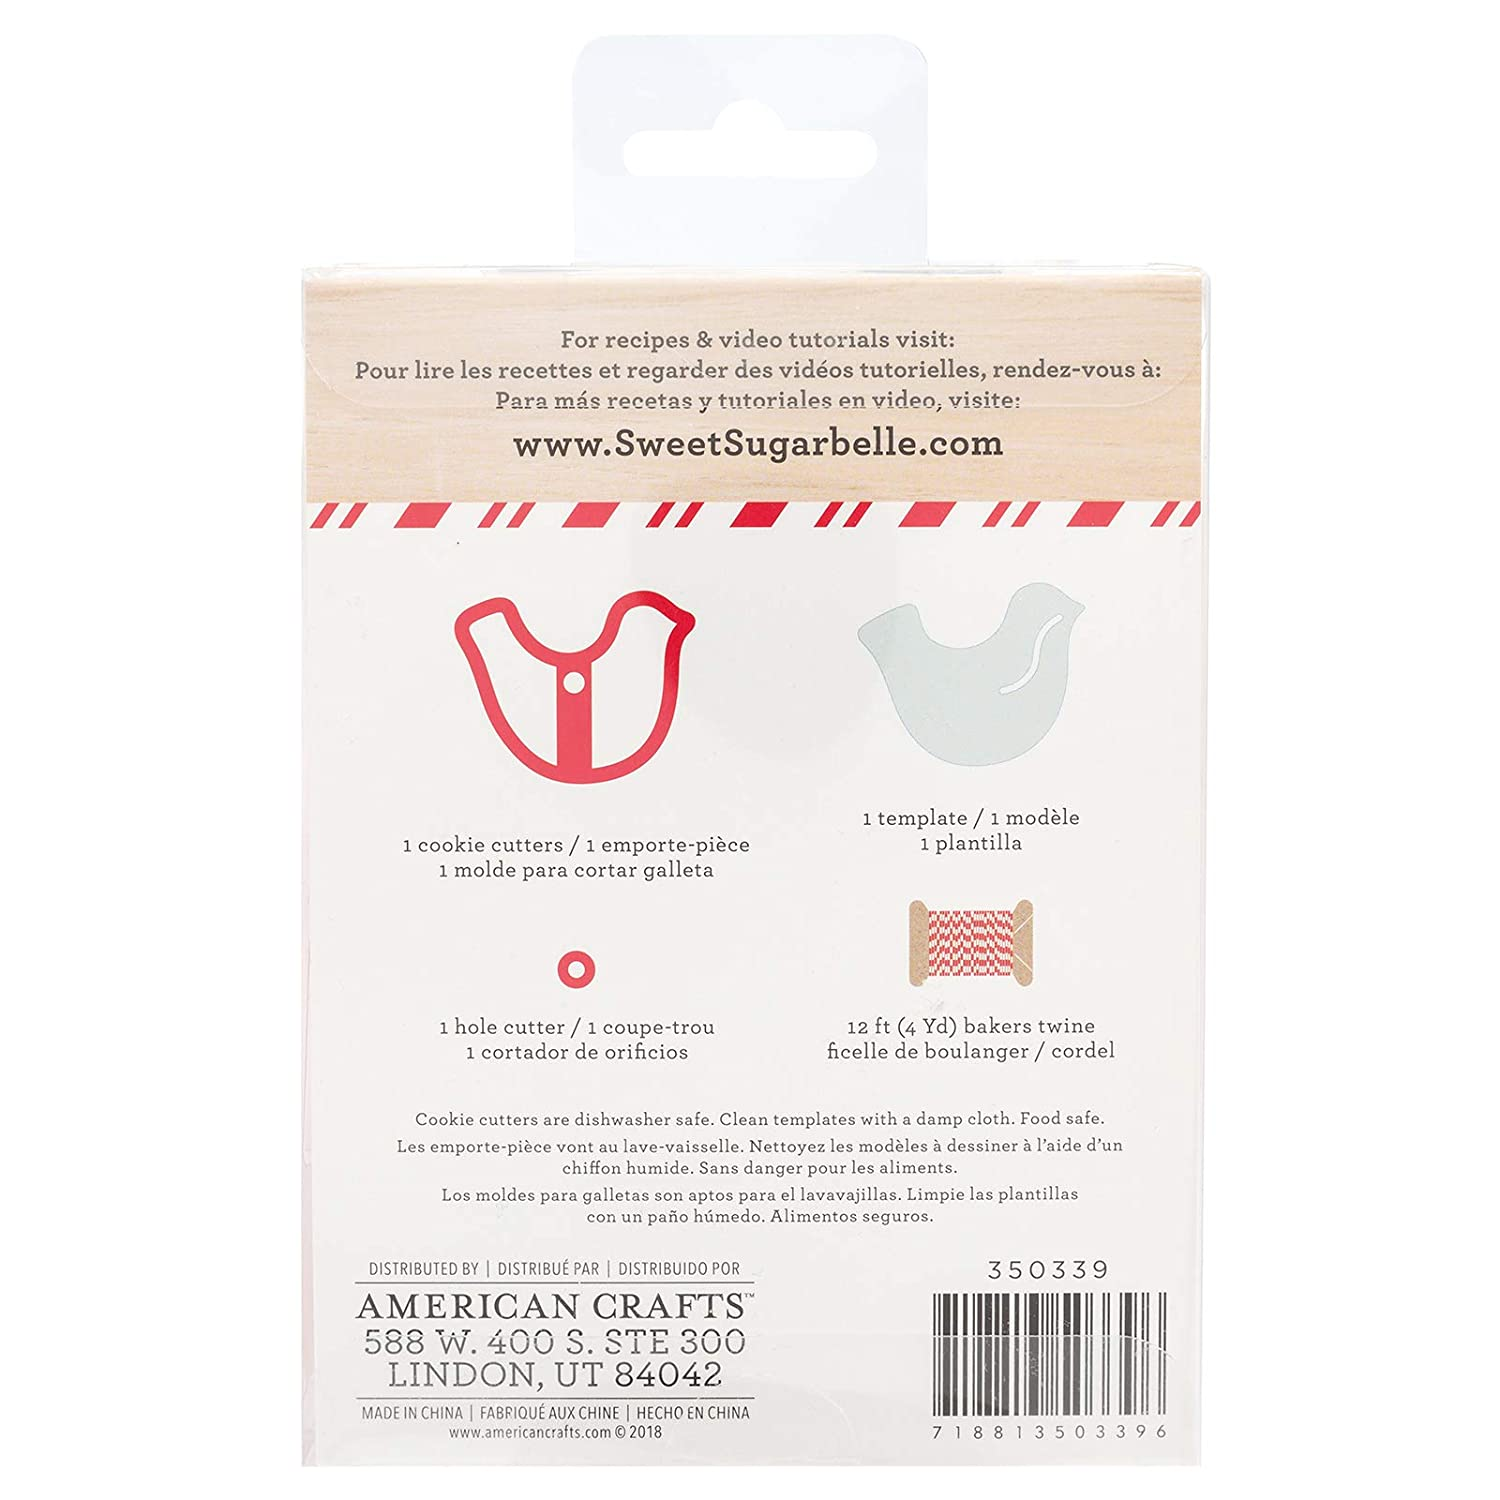 Amazon.com: Sweet Sugarbelle 350339 Dove Ornament Kit Mutli: Arts, Crafts & Sewing